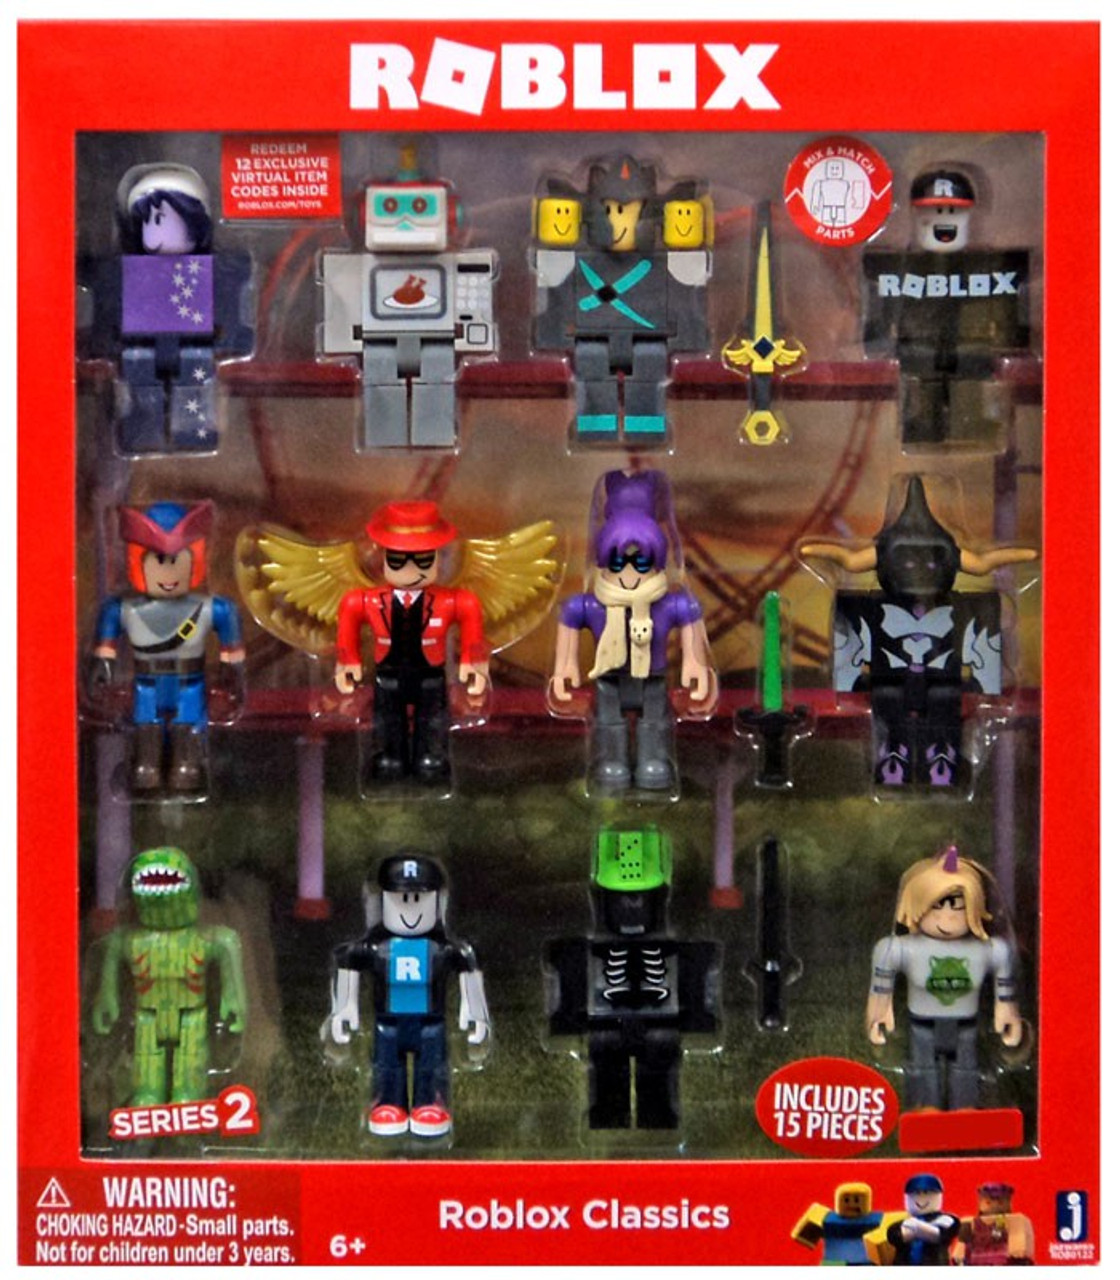 Online Pack Series 2 Roblox Classics Exclusive Action Figure 12 Pack Includes 12 Online Item Codes